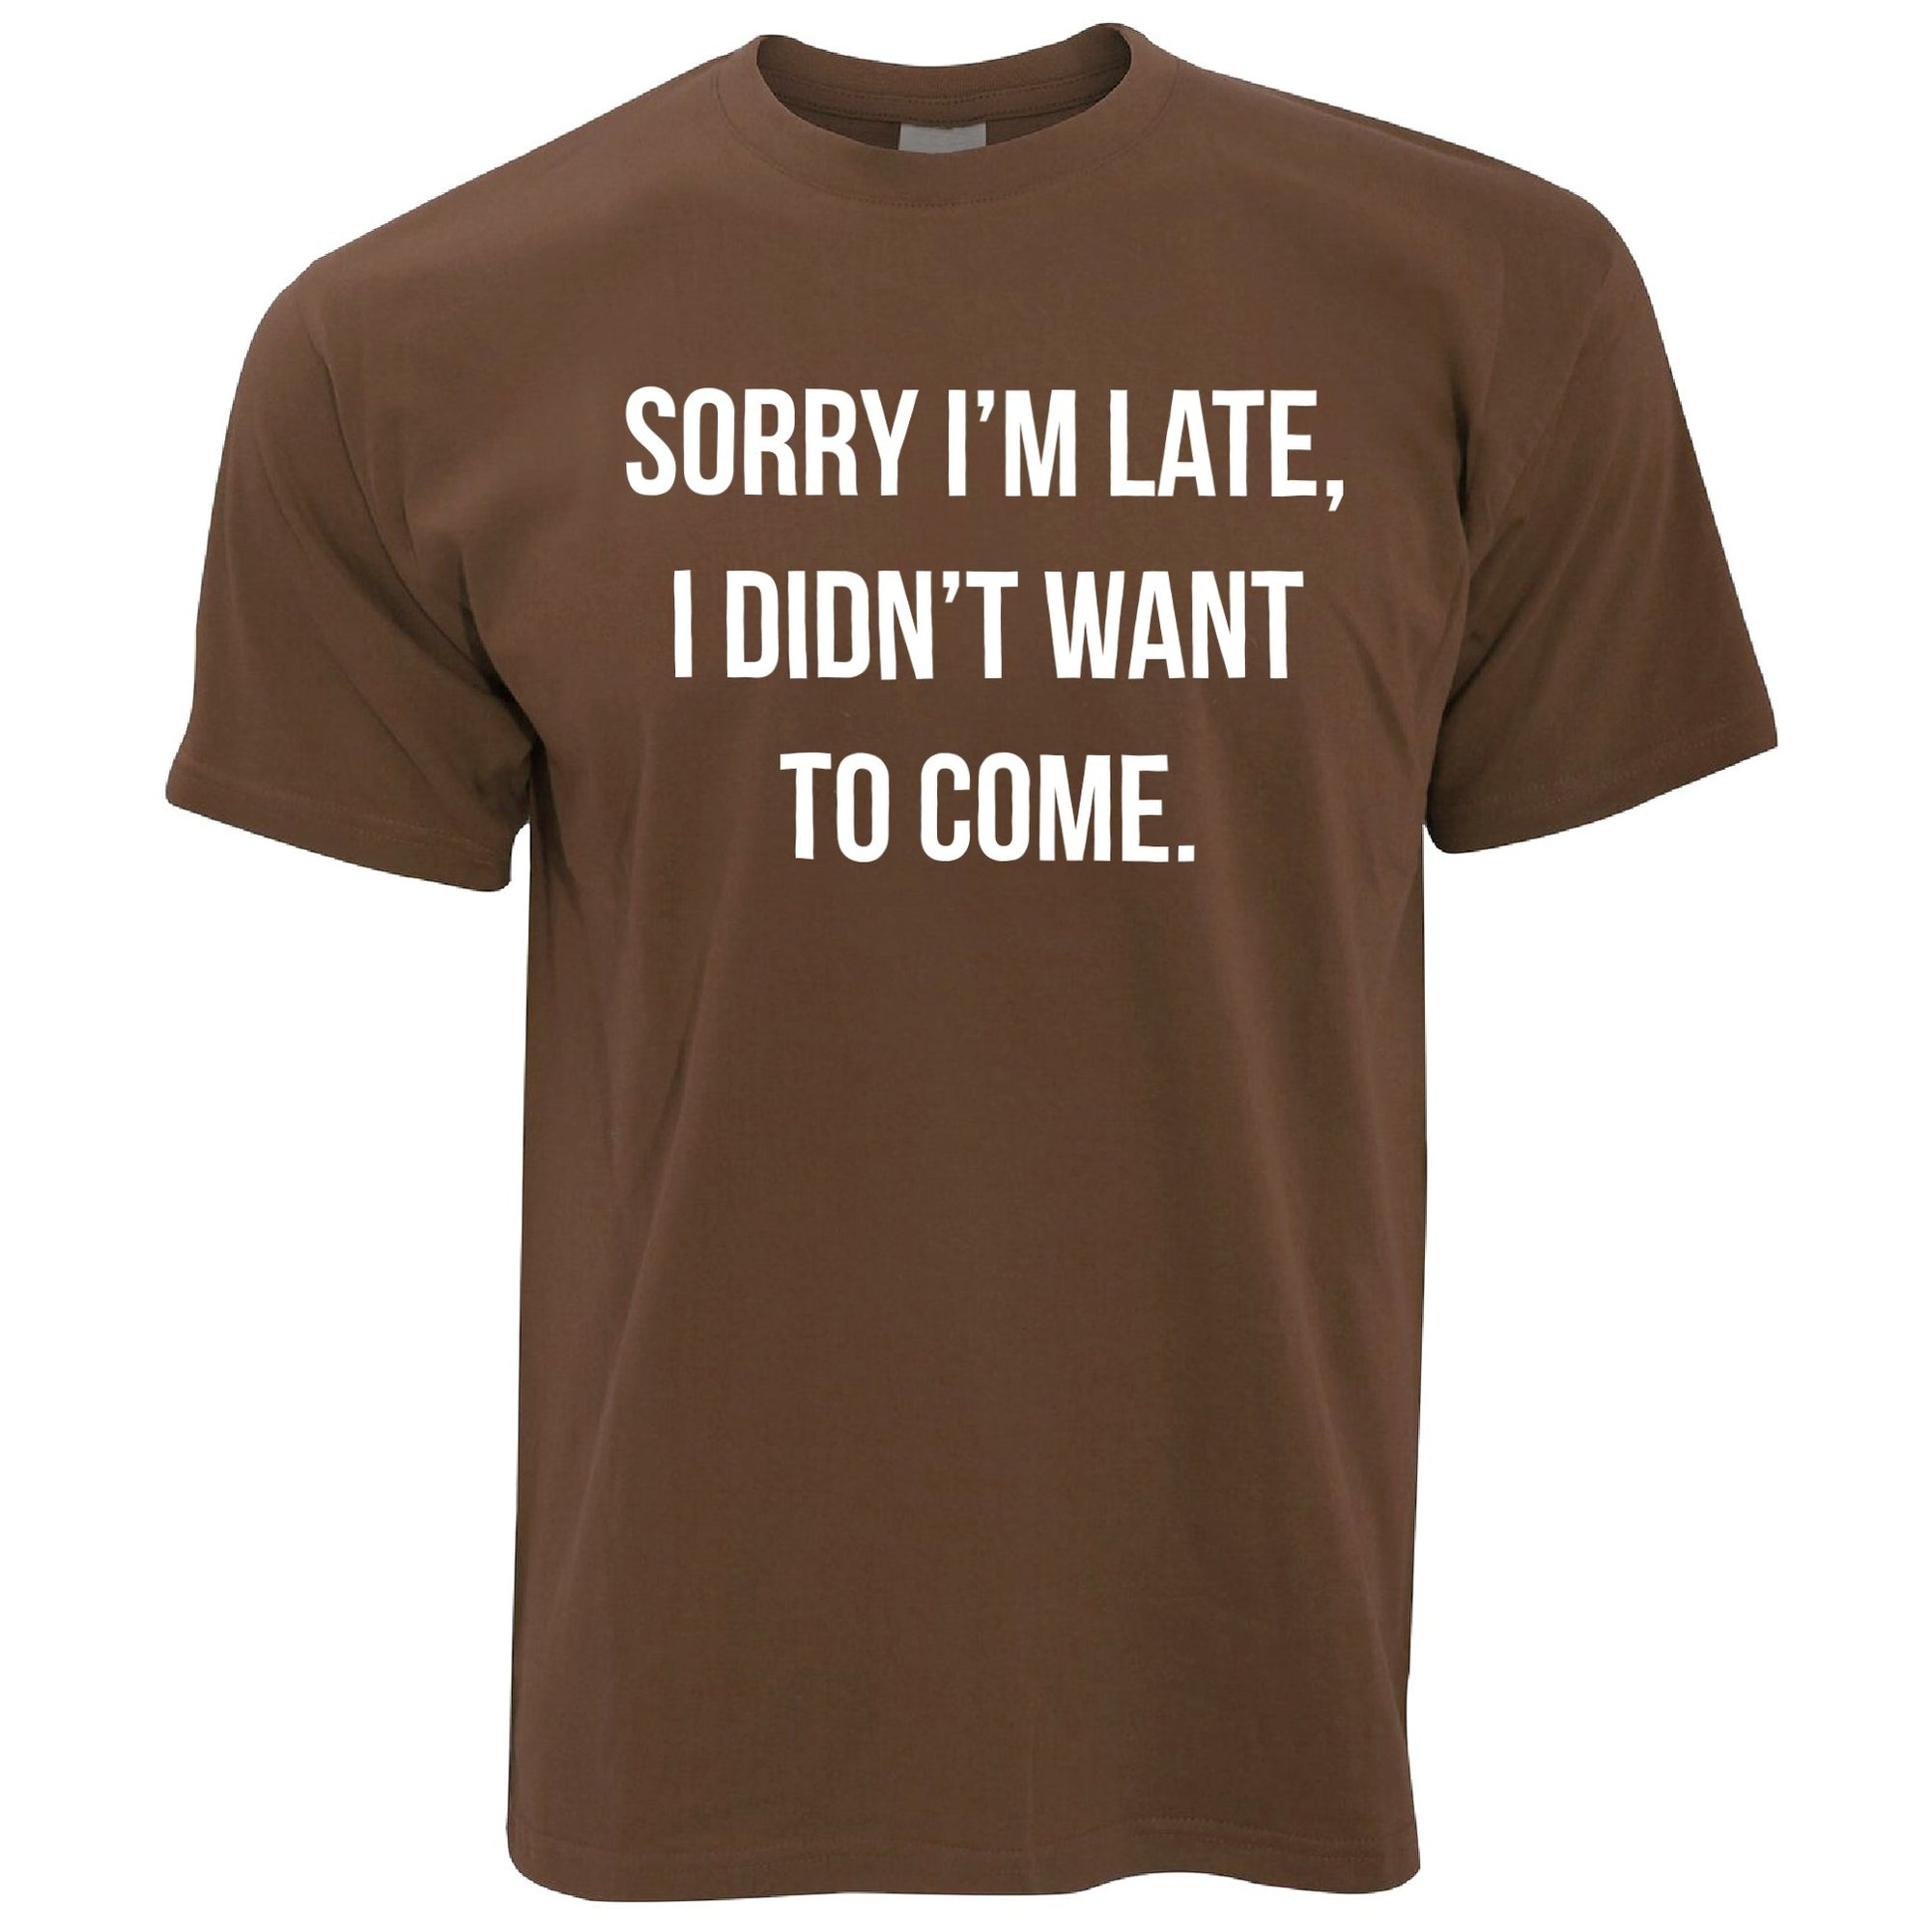 Funny T Shirt Sorry I'm Late, I Didn't Want To Come